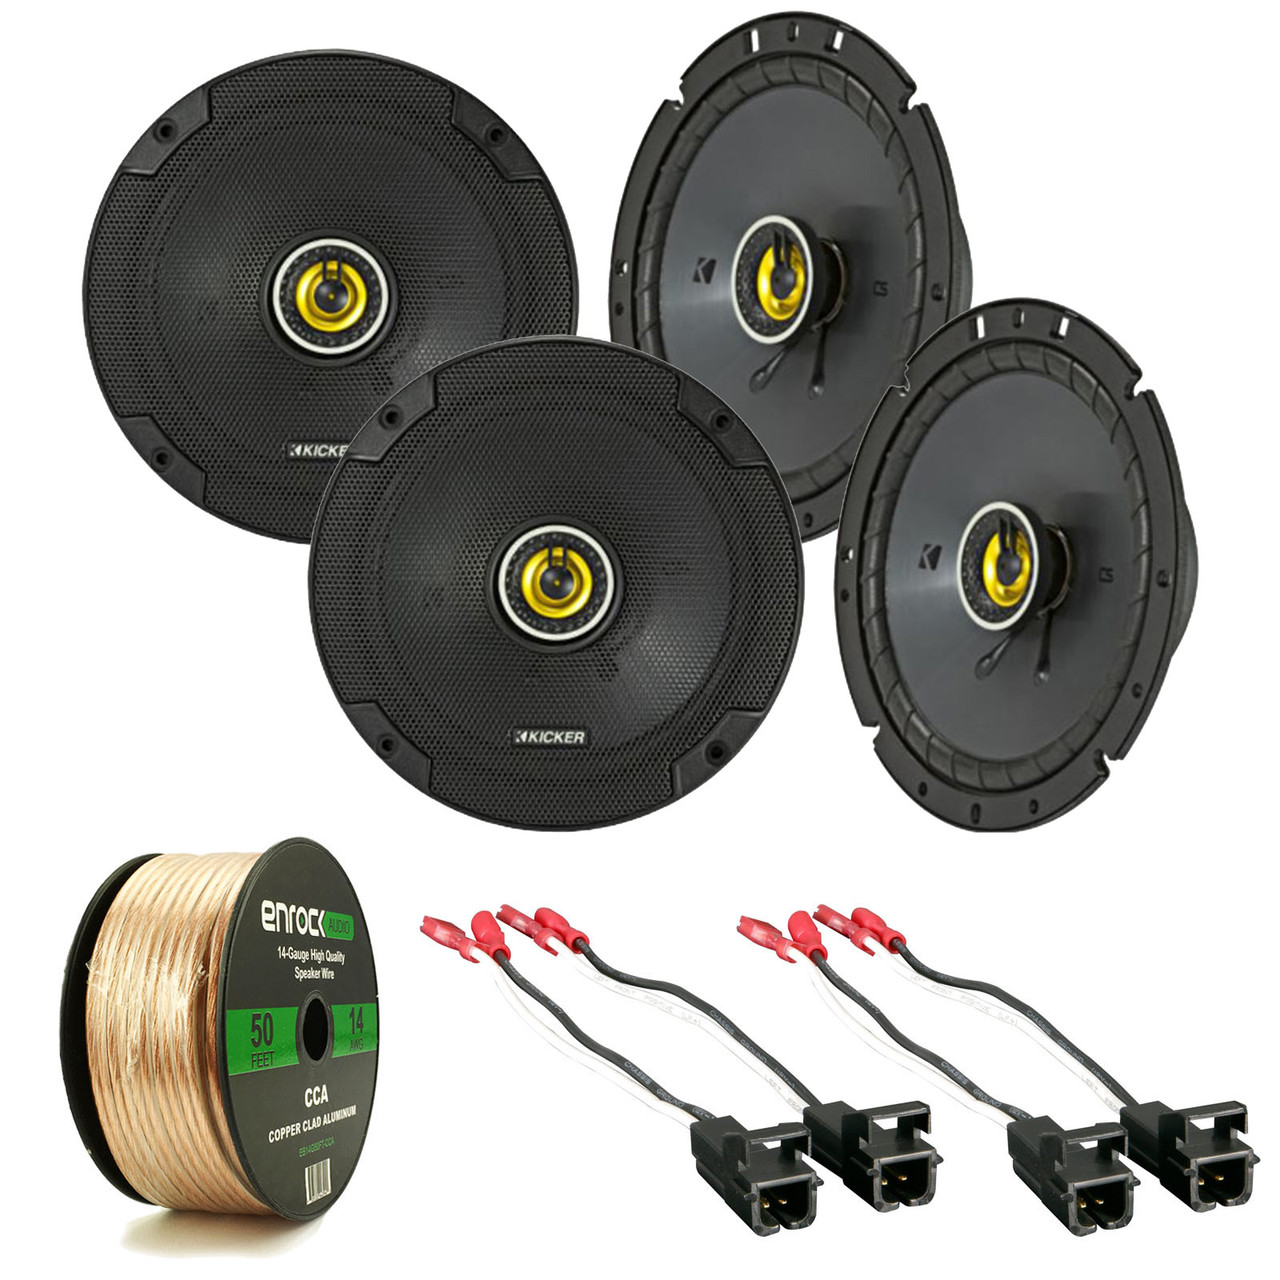 small resolution of 8x kicker 6 3 4 car speakers 2x speaker wire harness 14 awg 50ft wire r 40cs674 2 72 4568 road entertainment